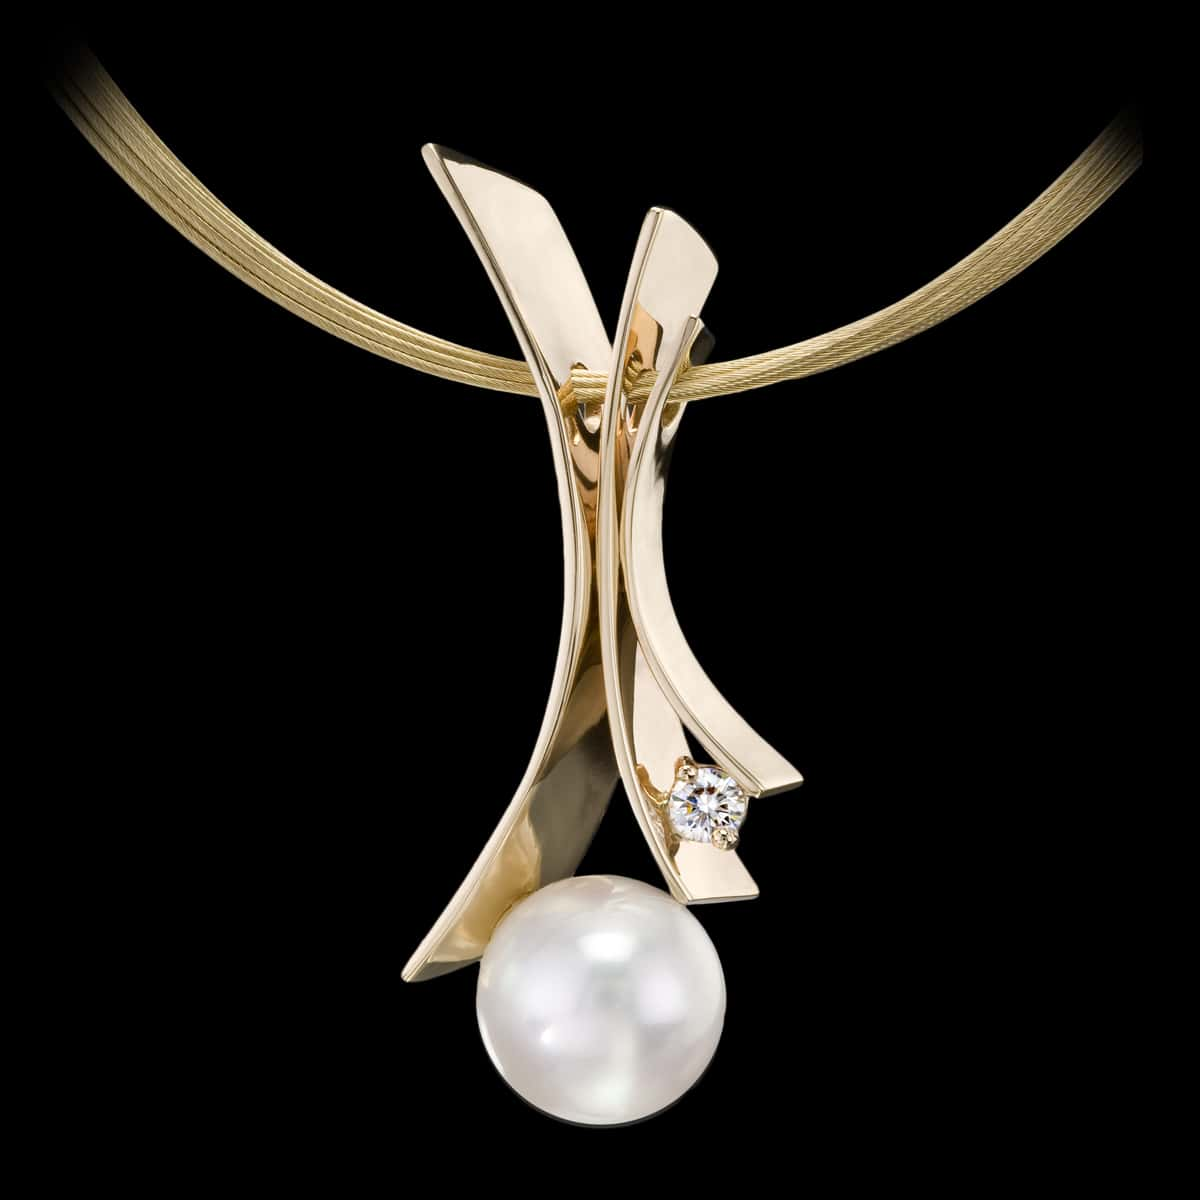 Fiore del Mare South Sea Pearl Pendant